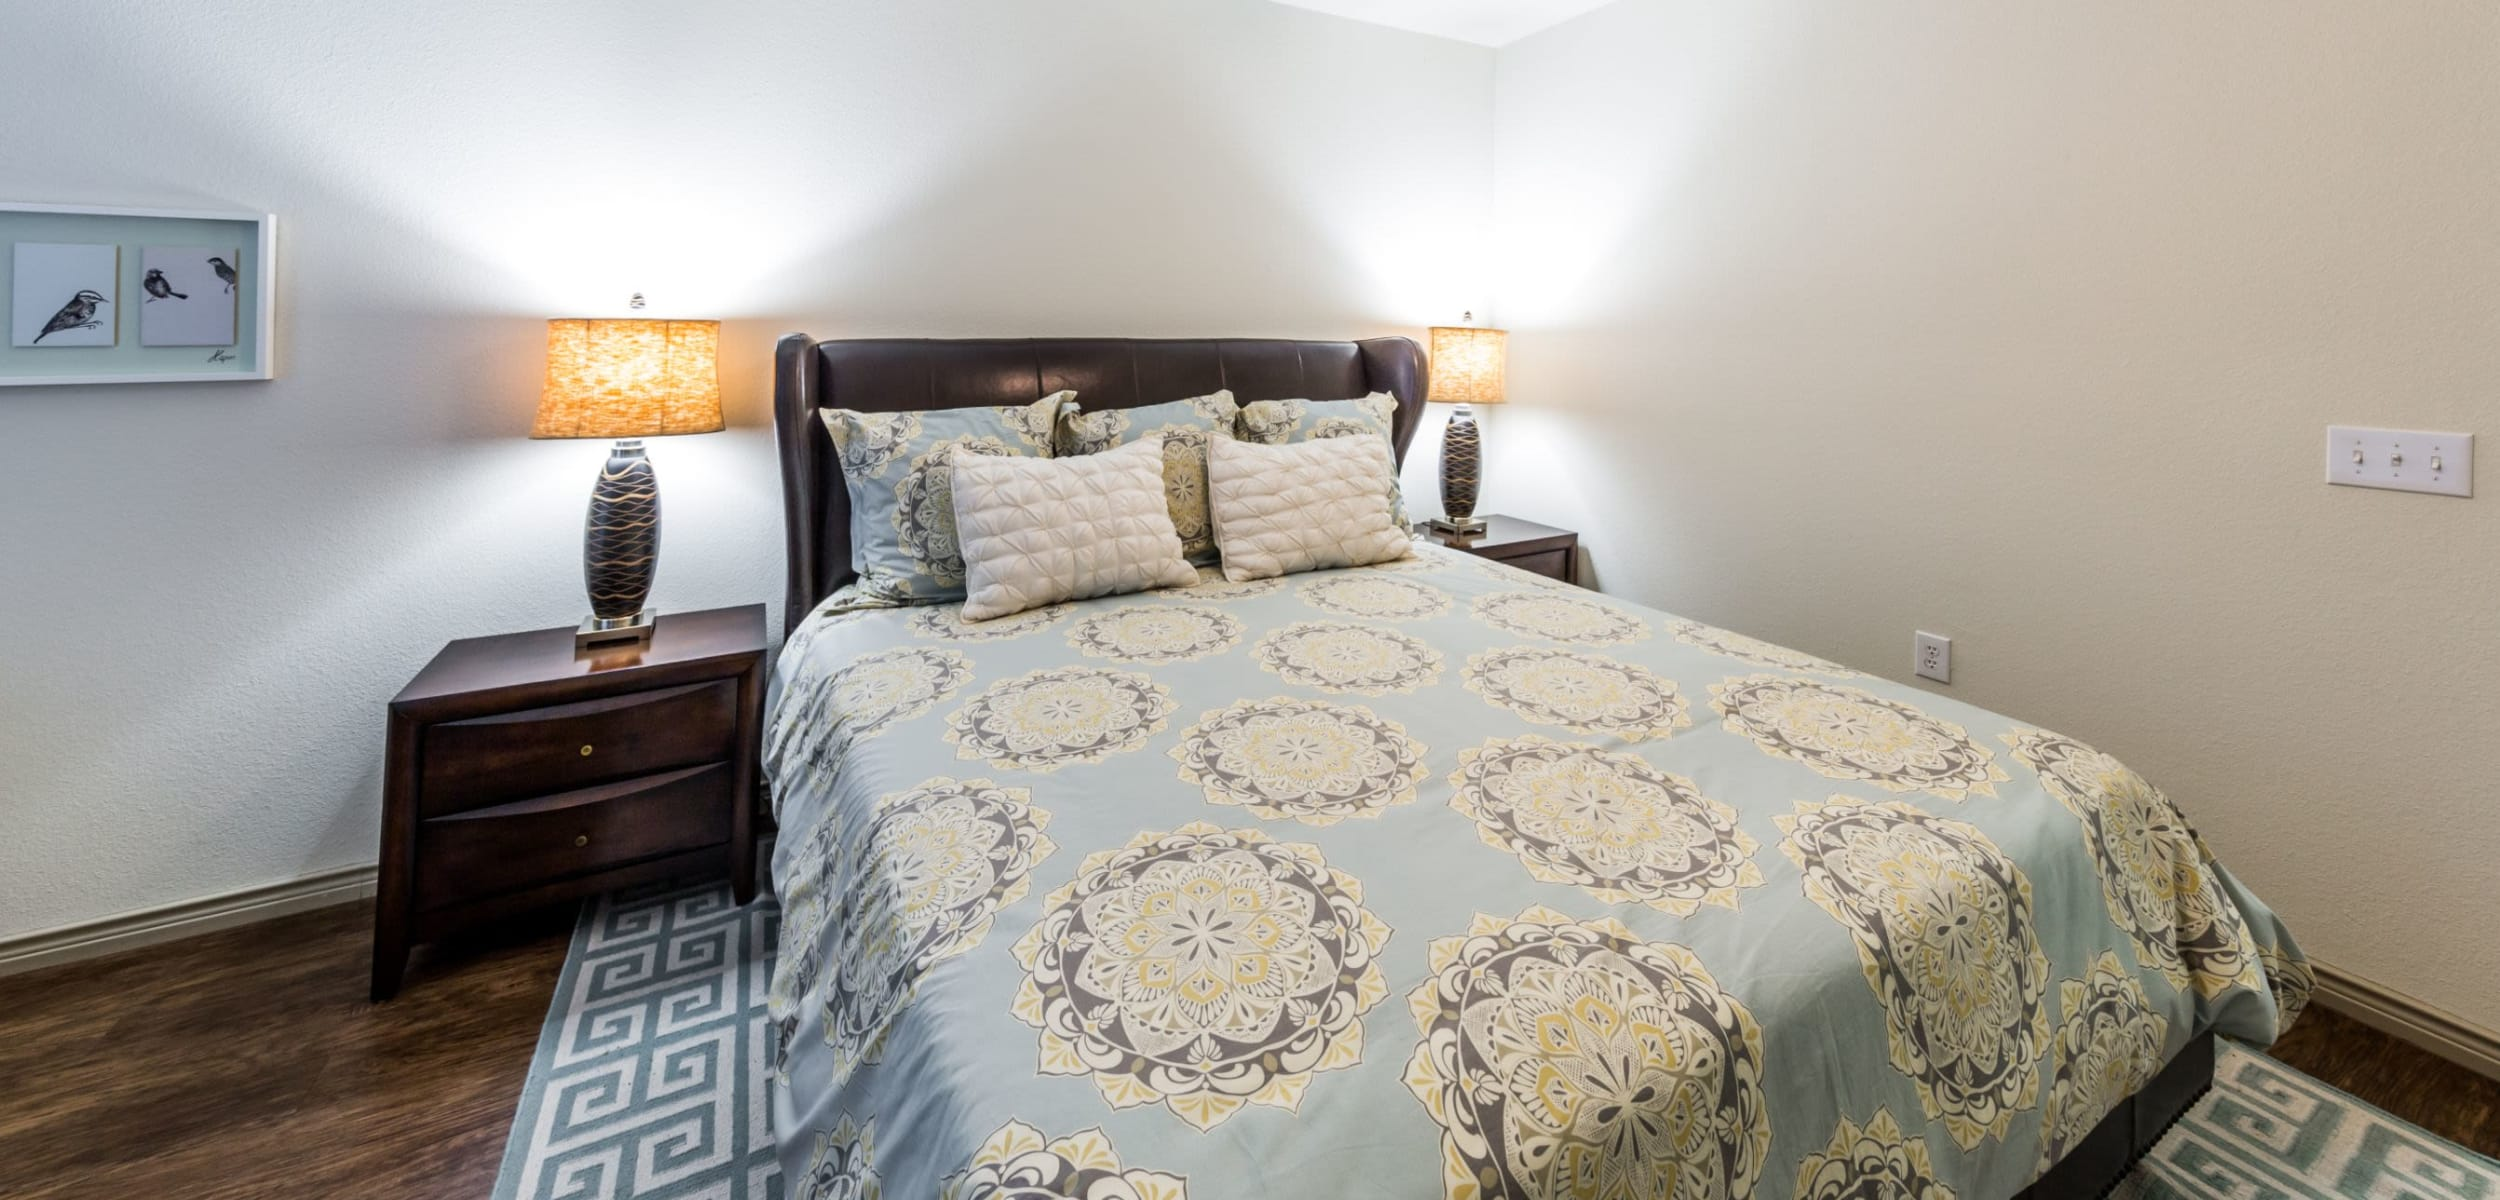 Bright bedroom with wood floors and a rug under the bed at The Marquis at Brushy Creek in Austin, Texas